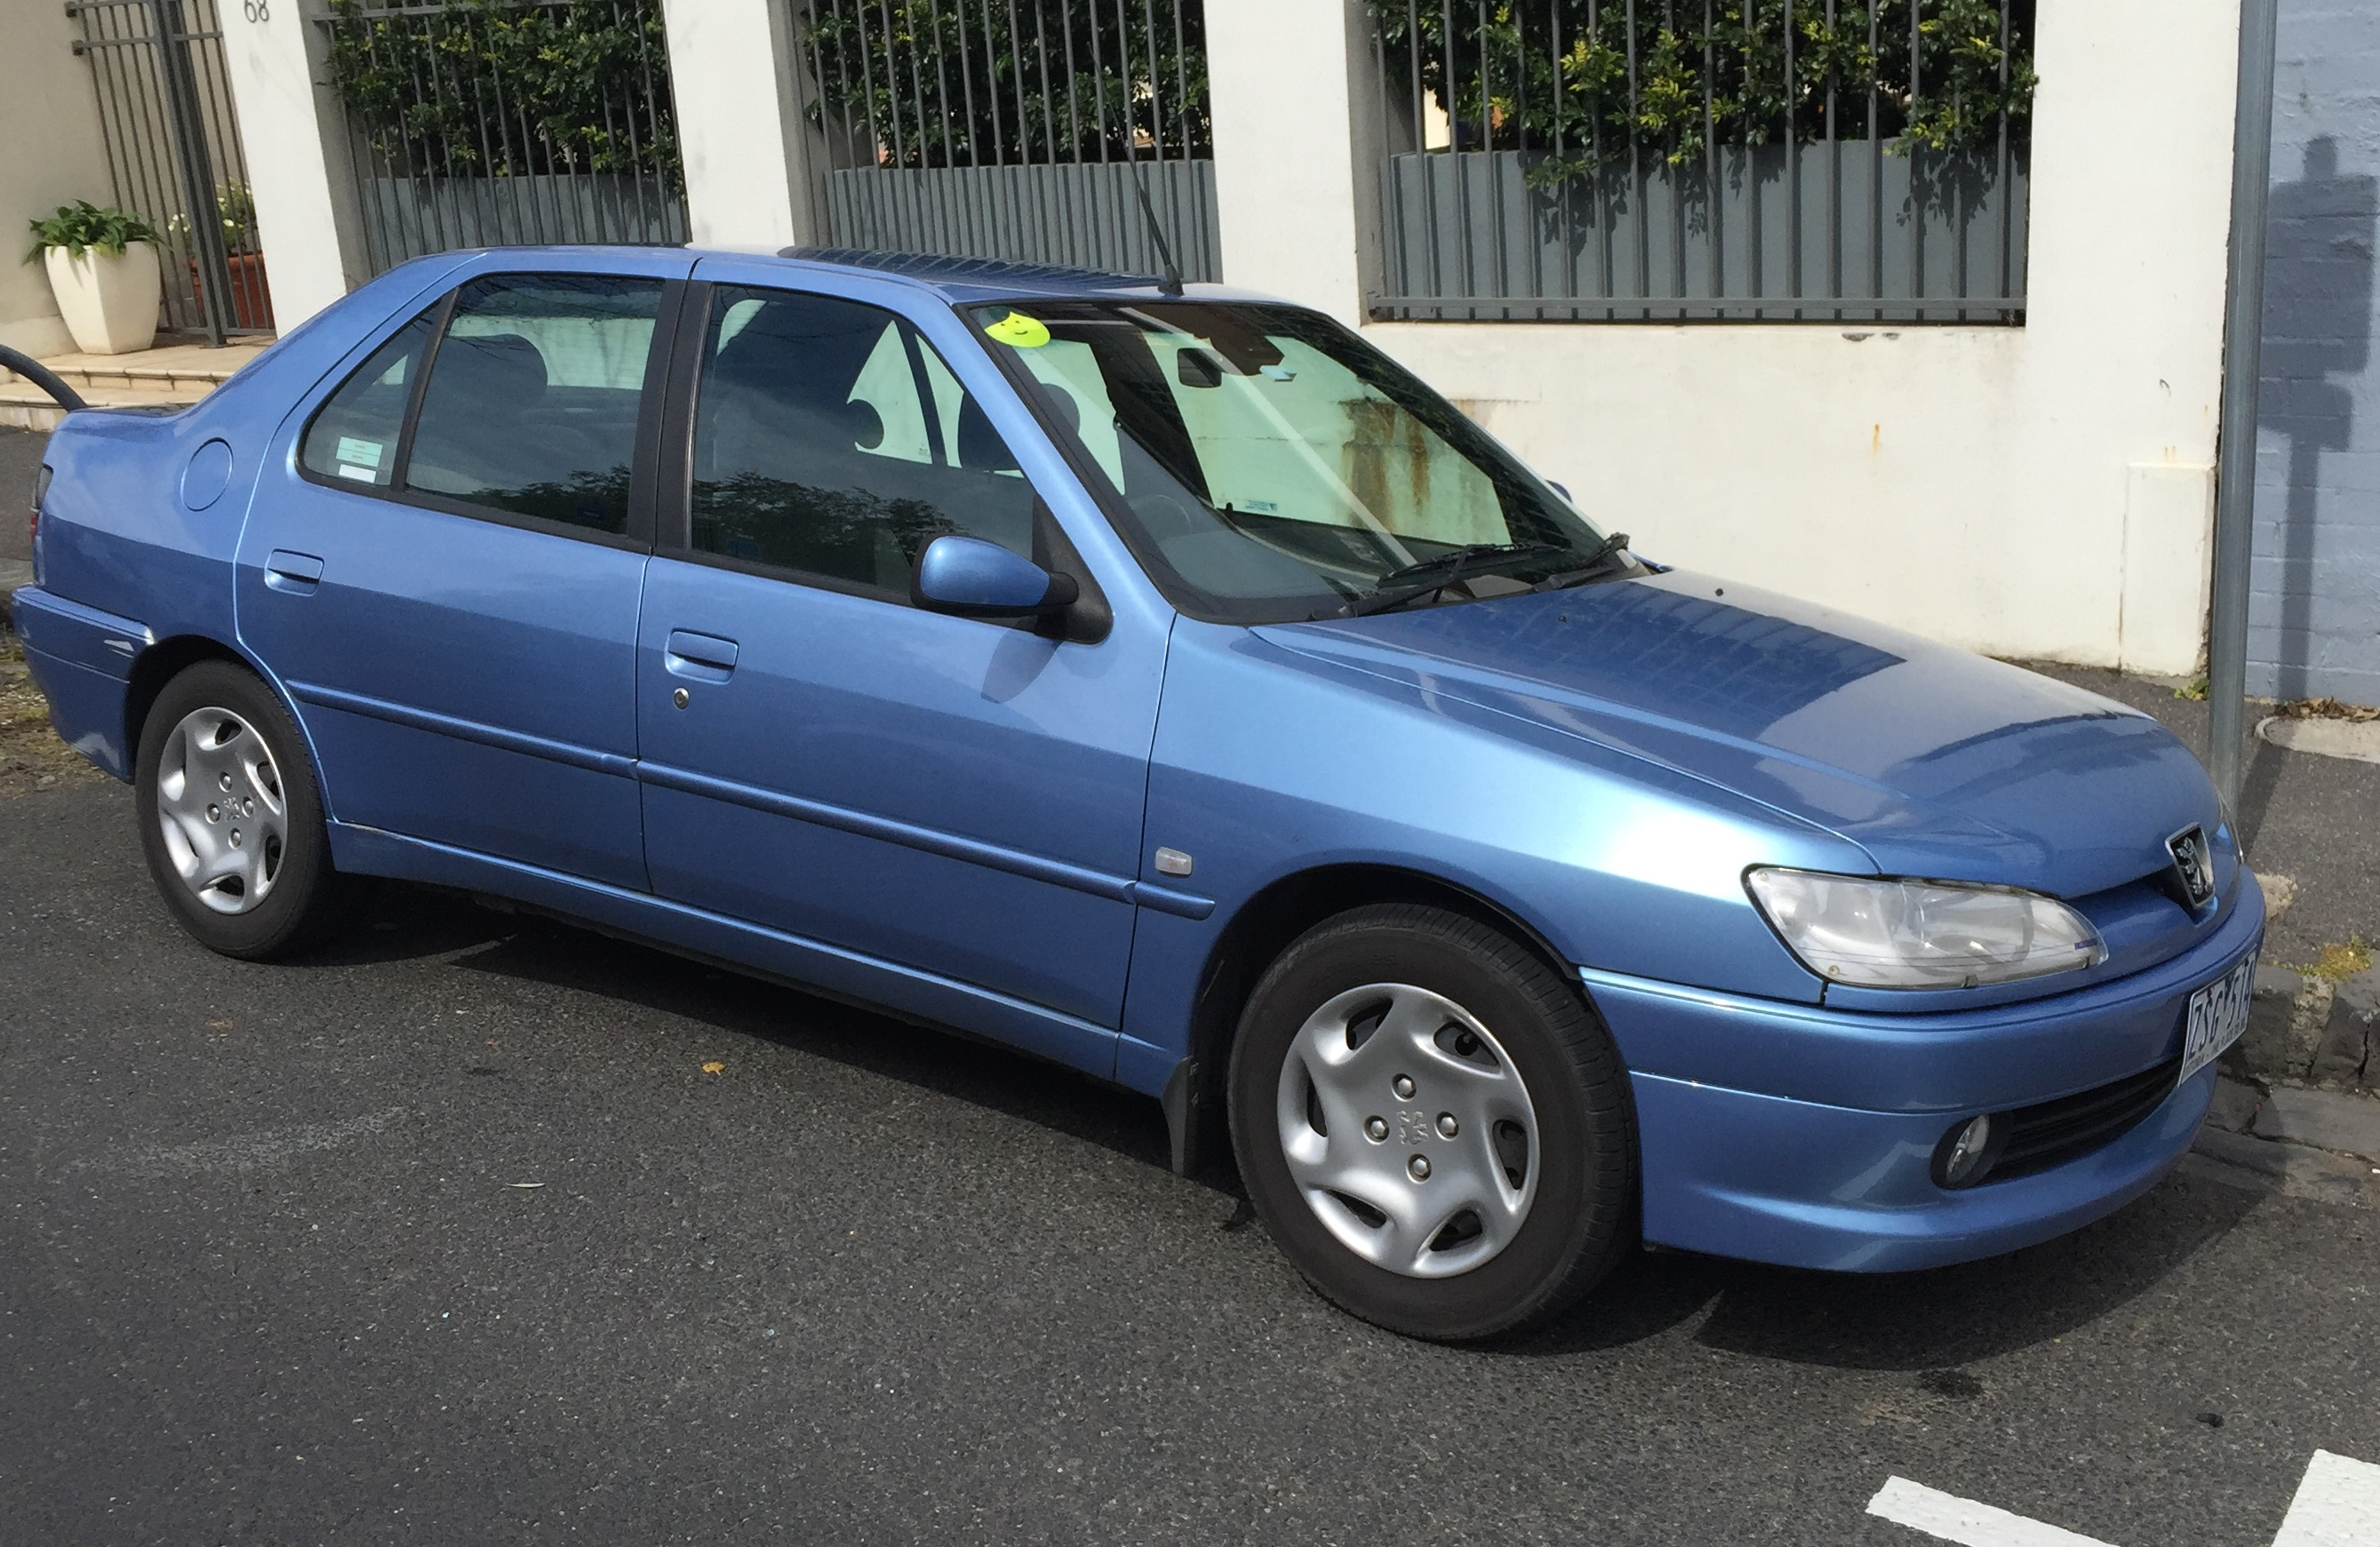 Rent Thom S 2000 Peugeot 306 By The Hour Or Day In Fitzroy